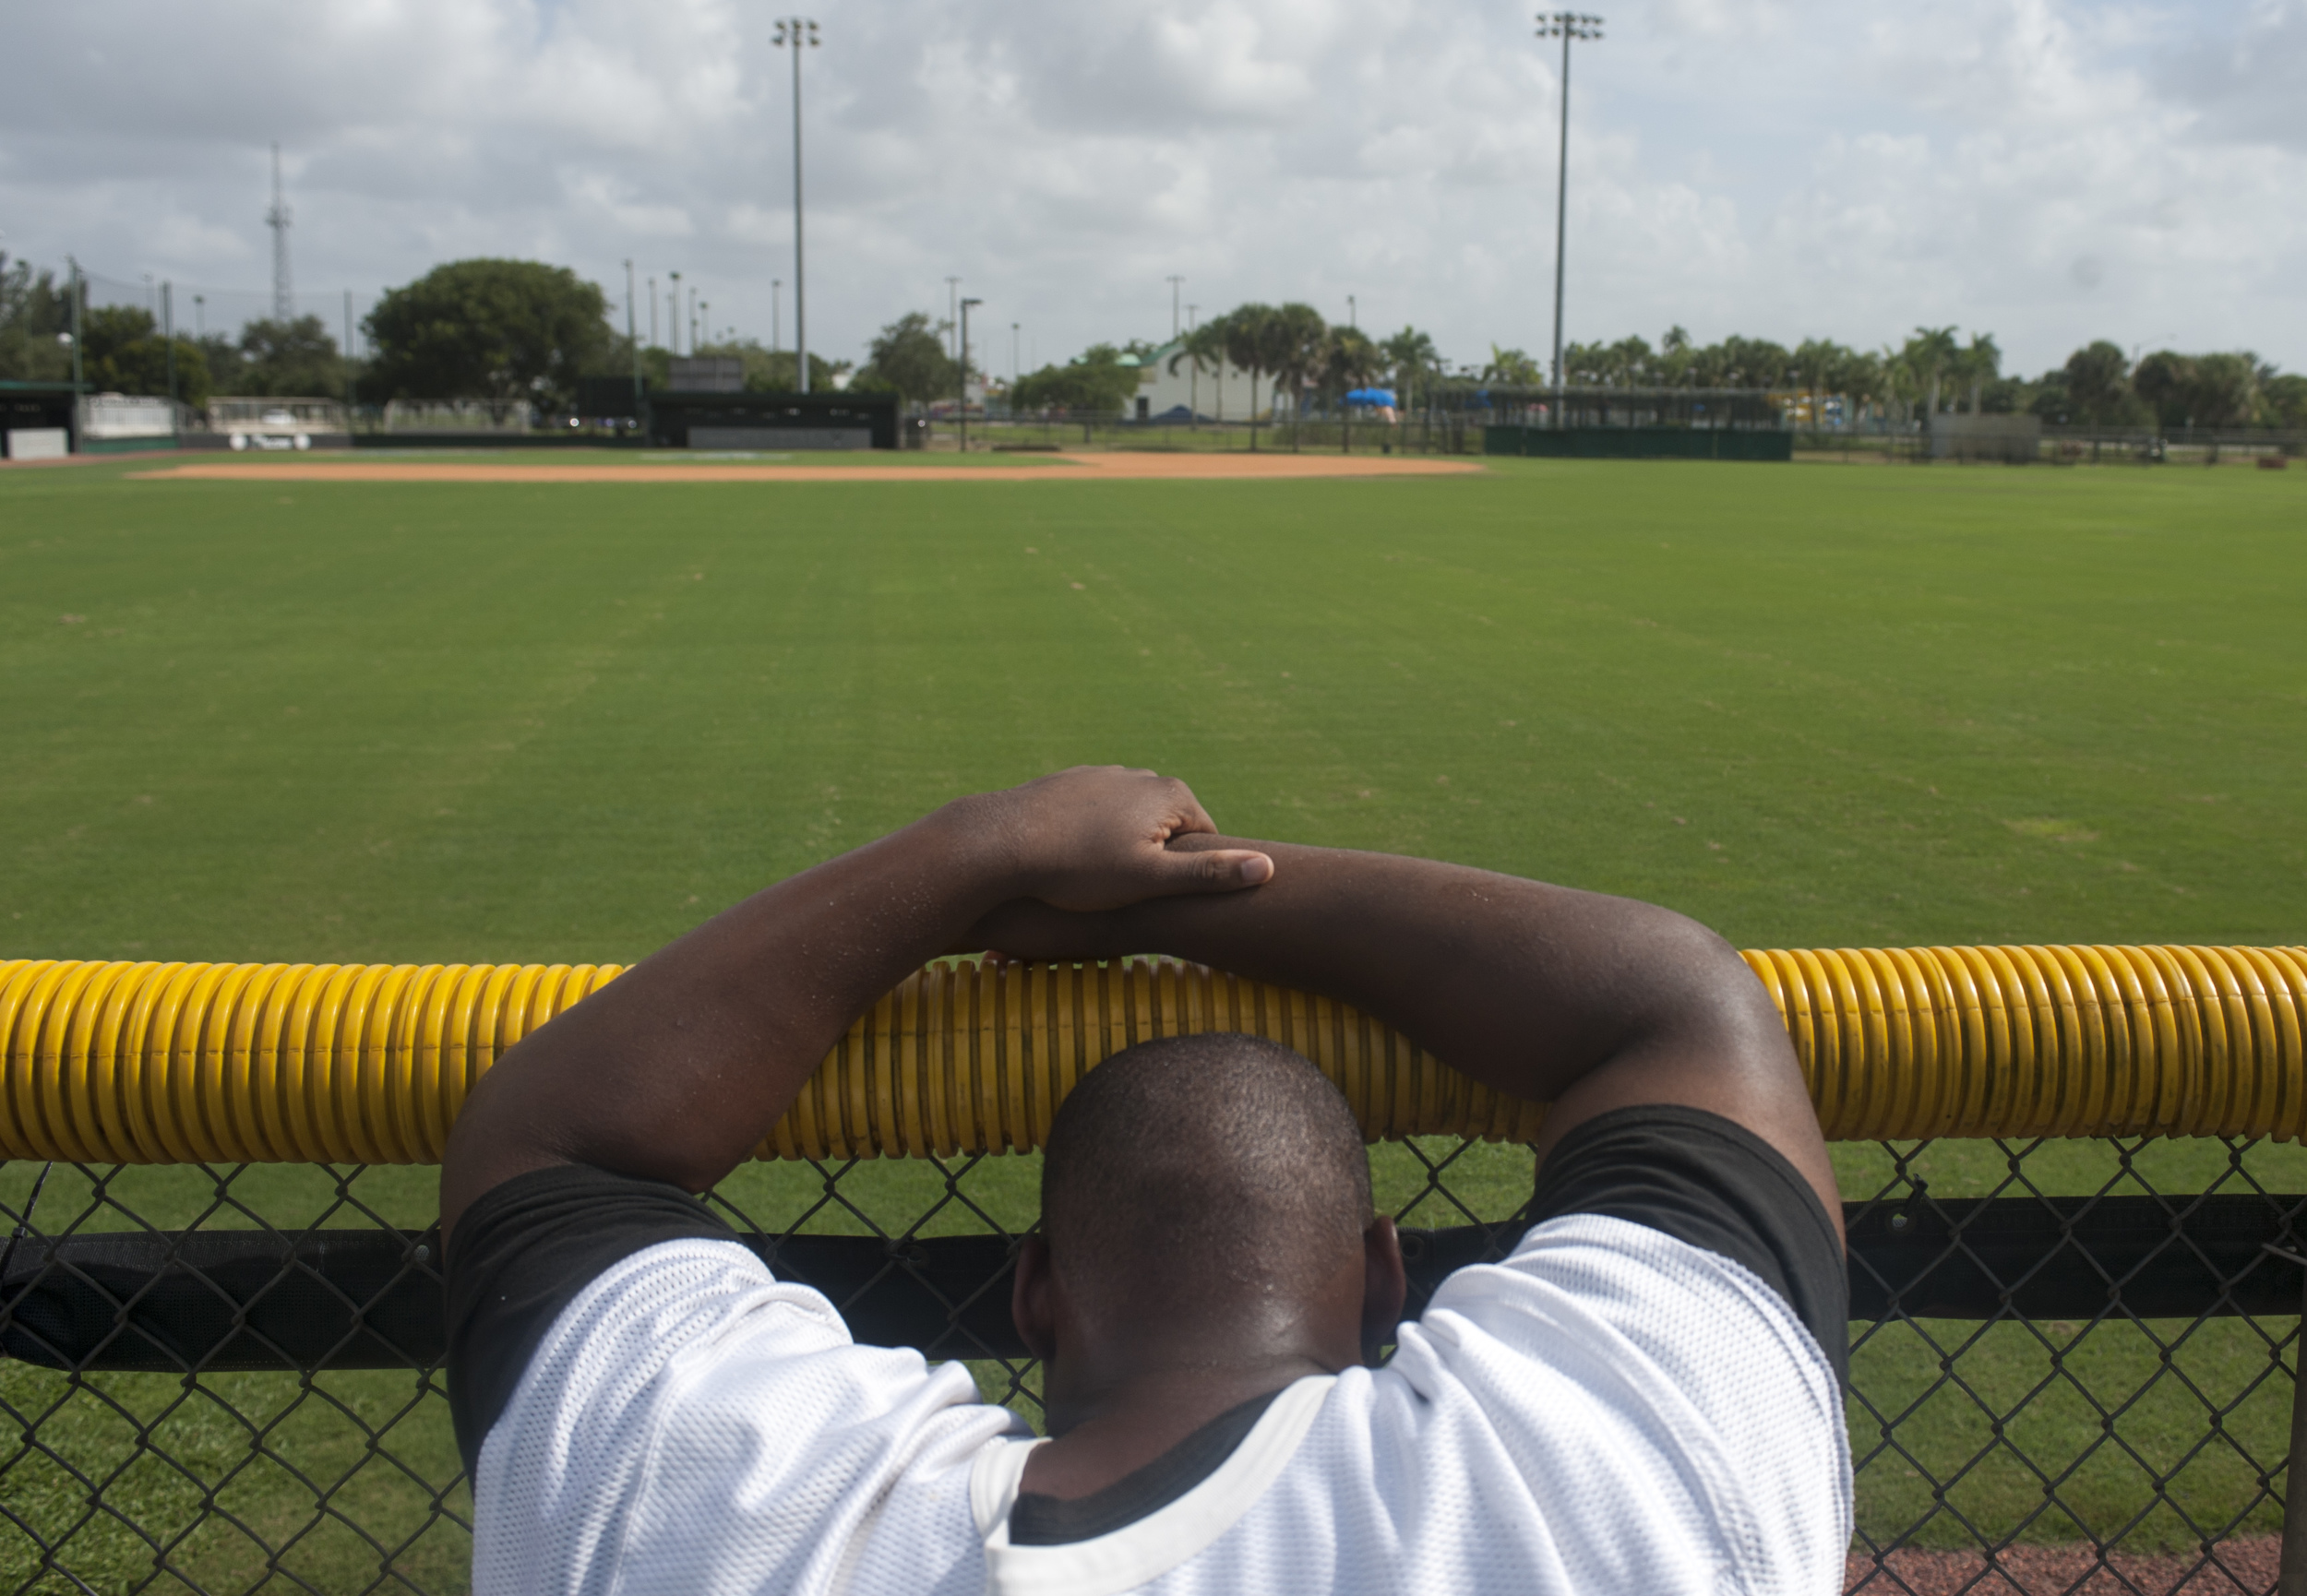 Flanagan high school senior offensive lineman Jamar Lambert leans on a fence after finishing wind sprints during the first practice of the high school football season at Flanagan High School on Monday, Aug. 1, 2016. The reigning state champions look to repeat again despite the loss of key players from last year.